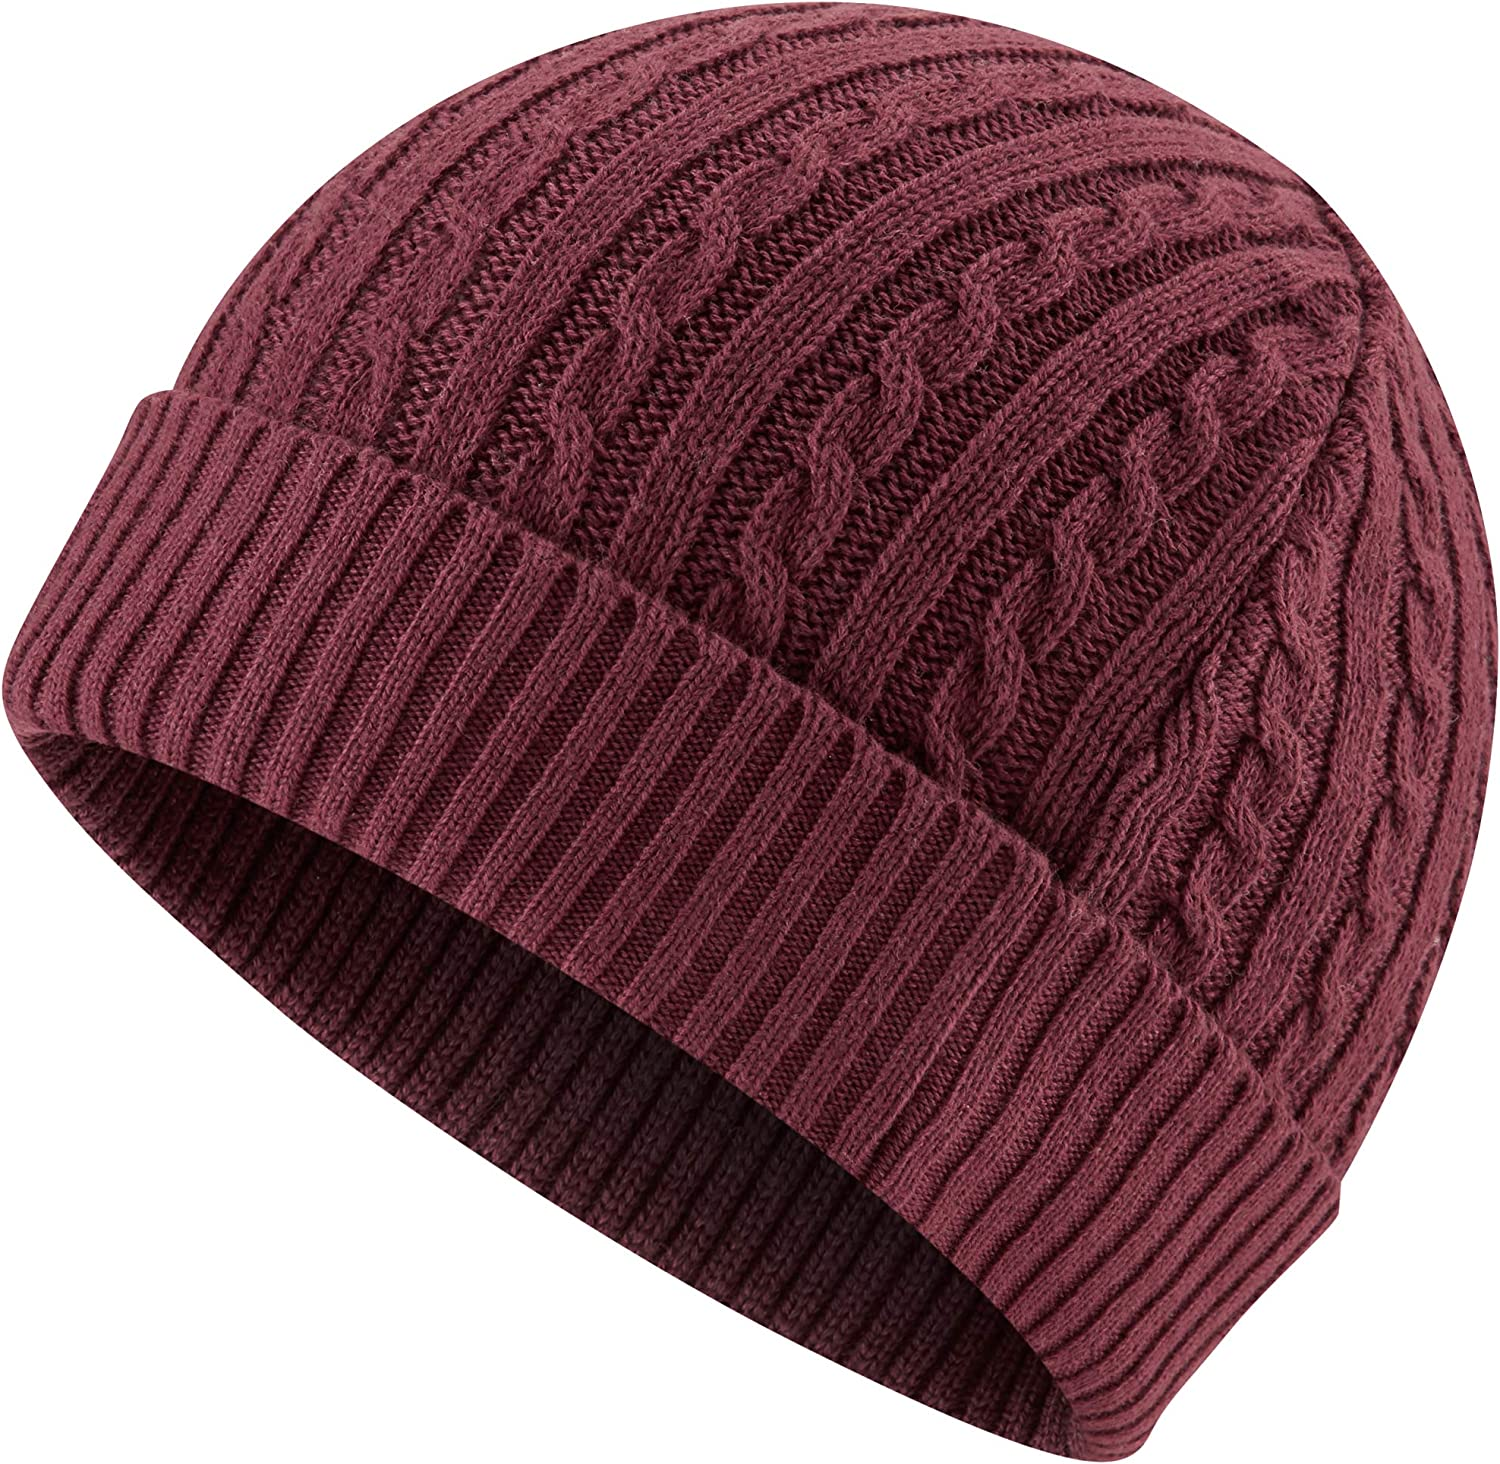 Charles Wilson Mens Knitted Cotton Beanie Hat